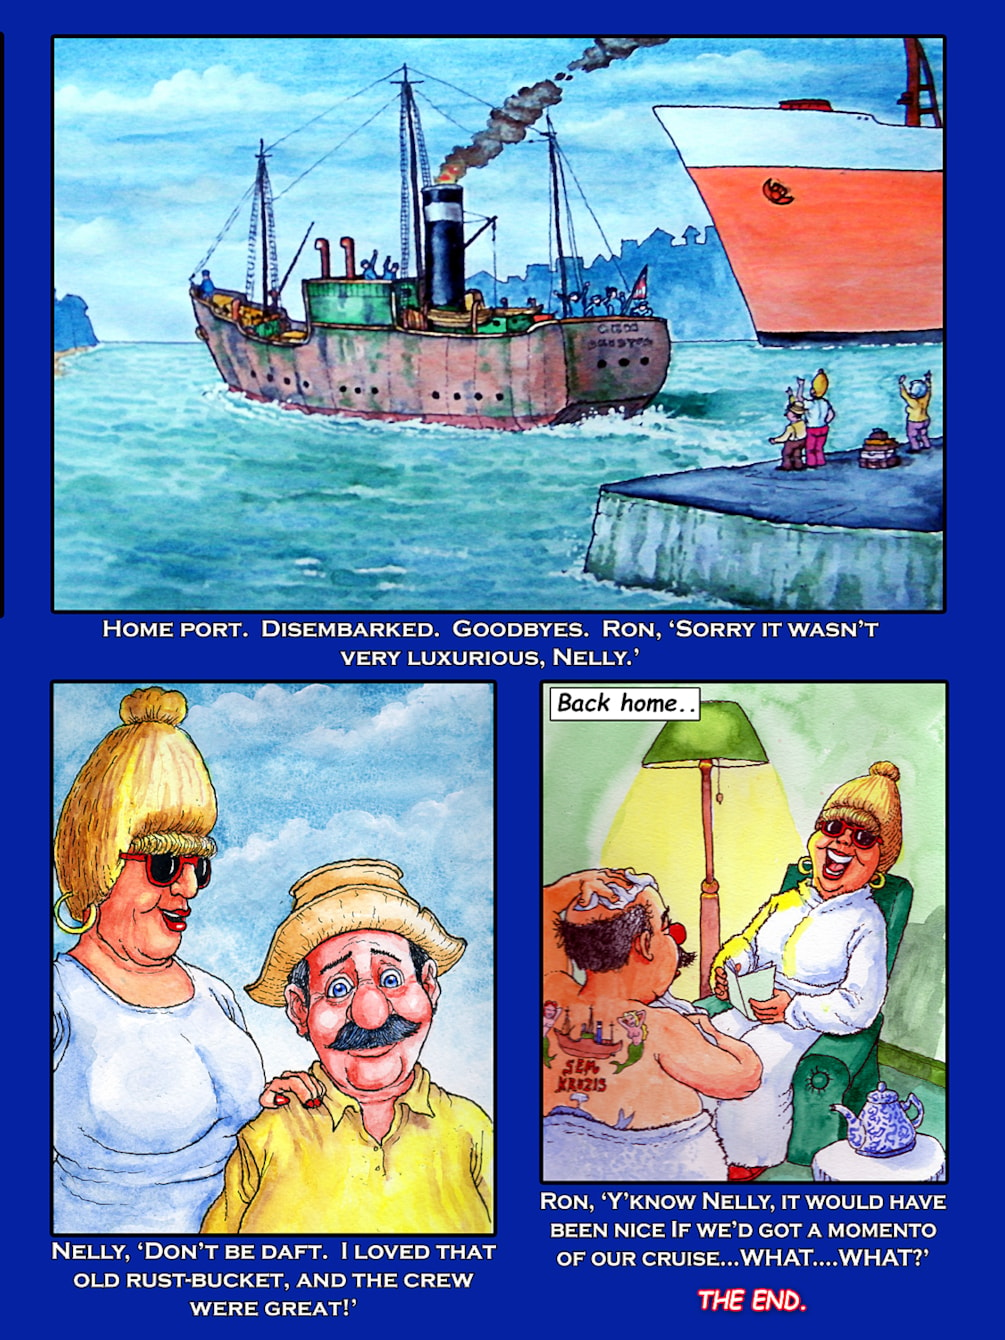 Ron and Nelly's World Cruise-page12